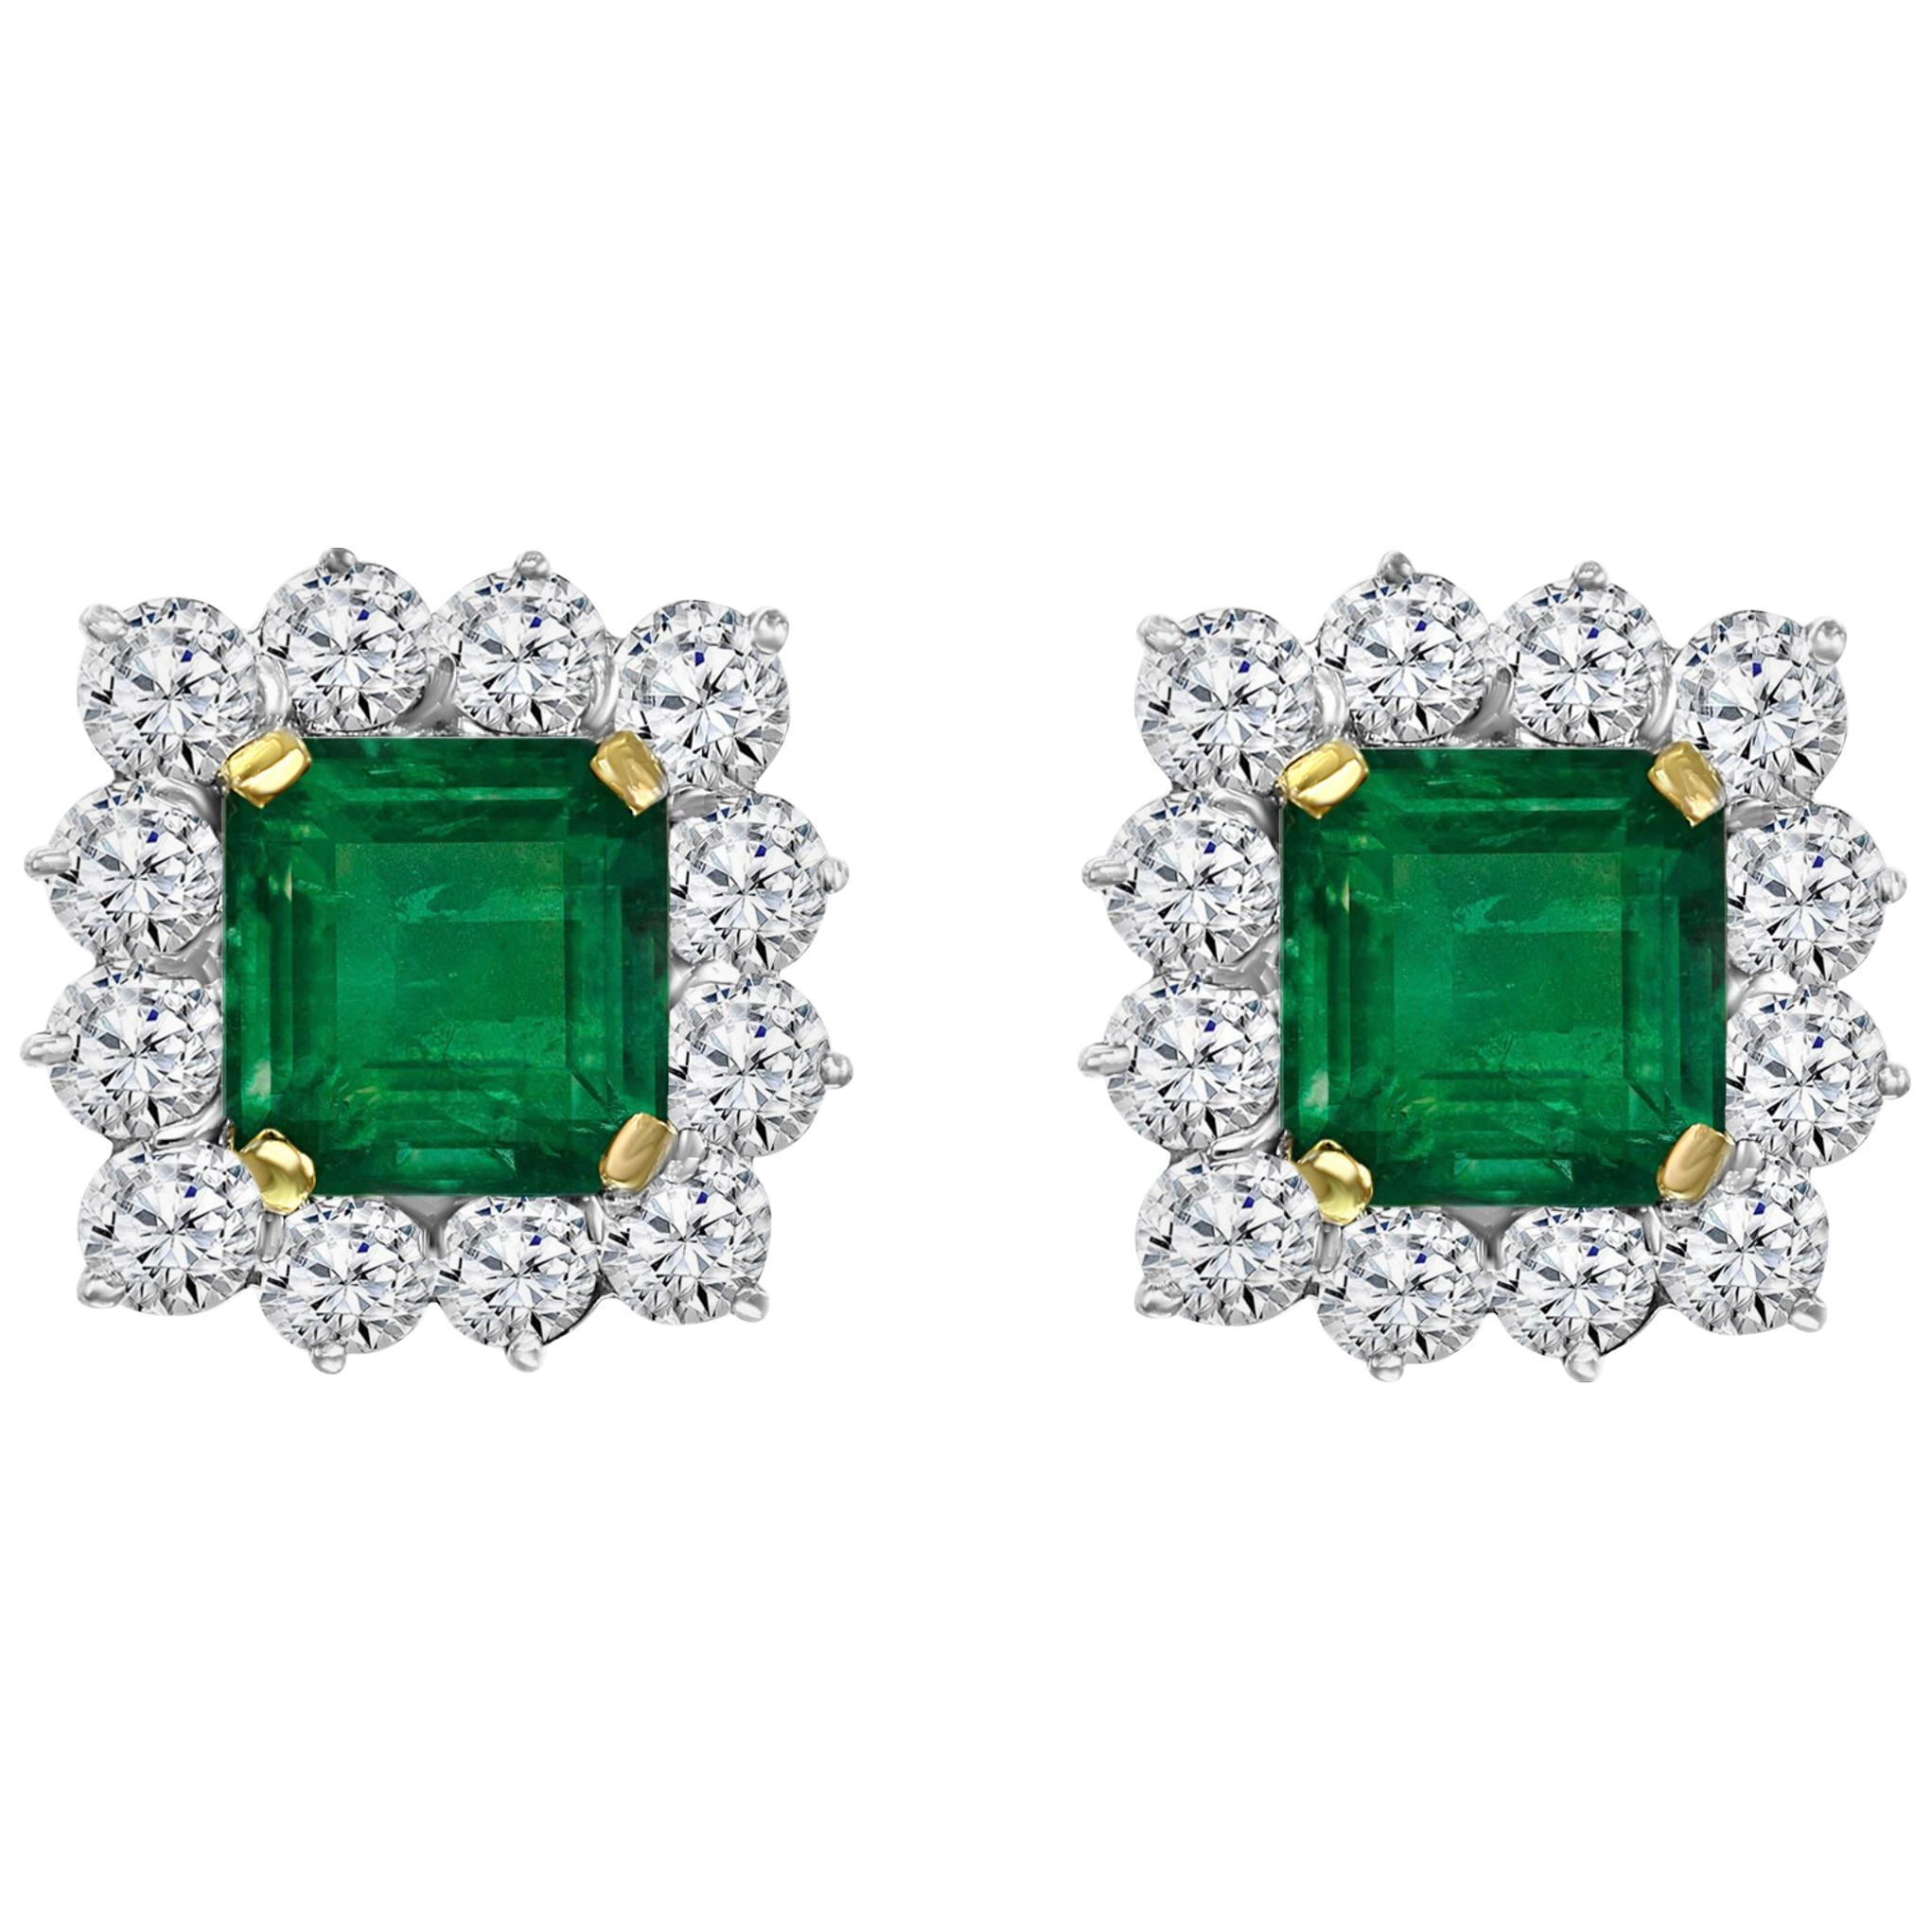 AGL Certified Insignificant Traditional 5 ct Colombian Emerald Diamond Earrings